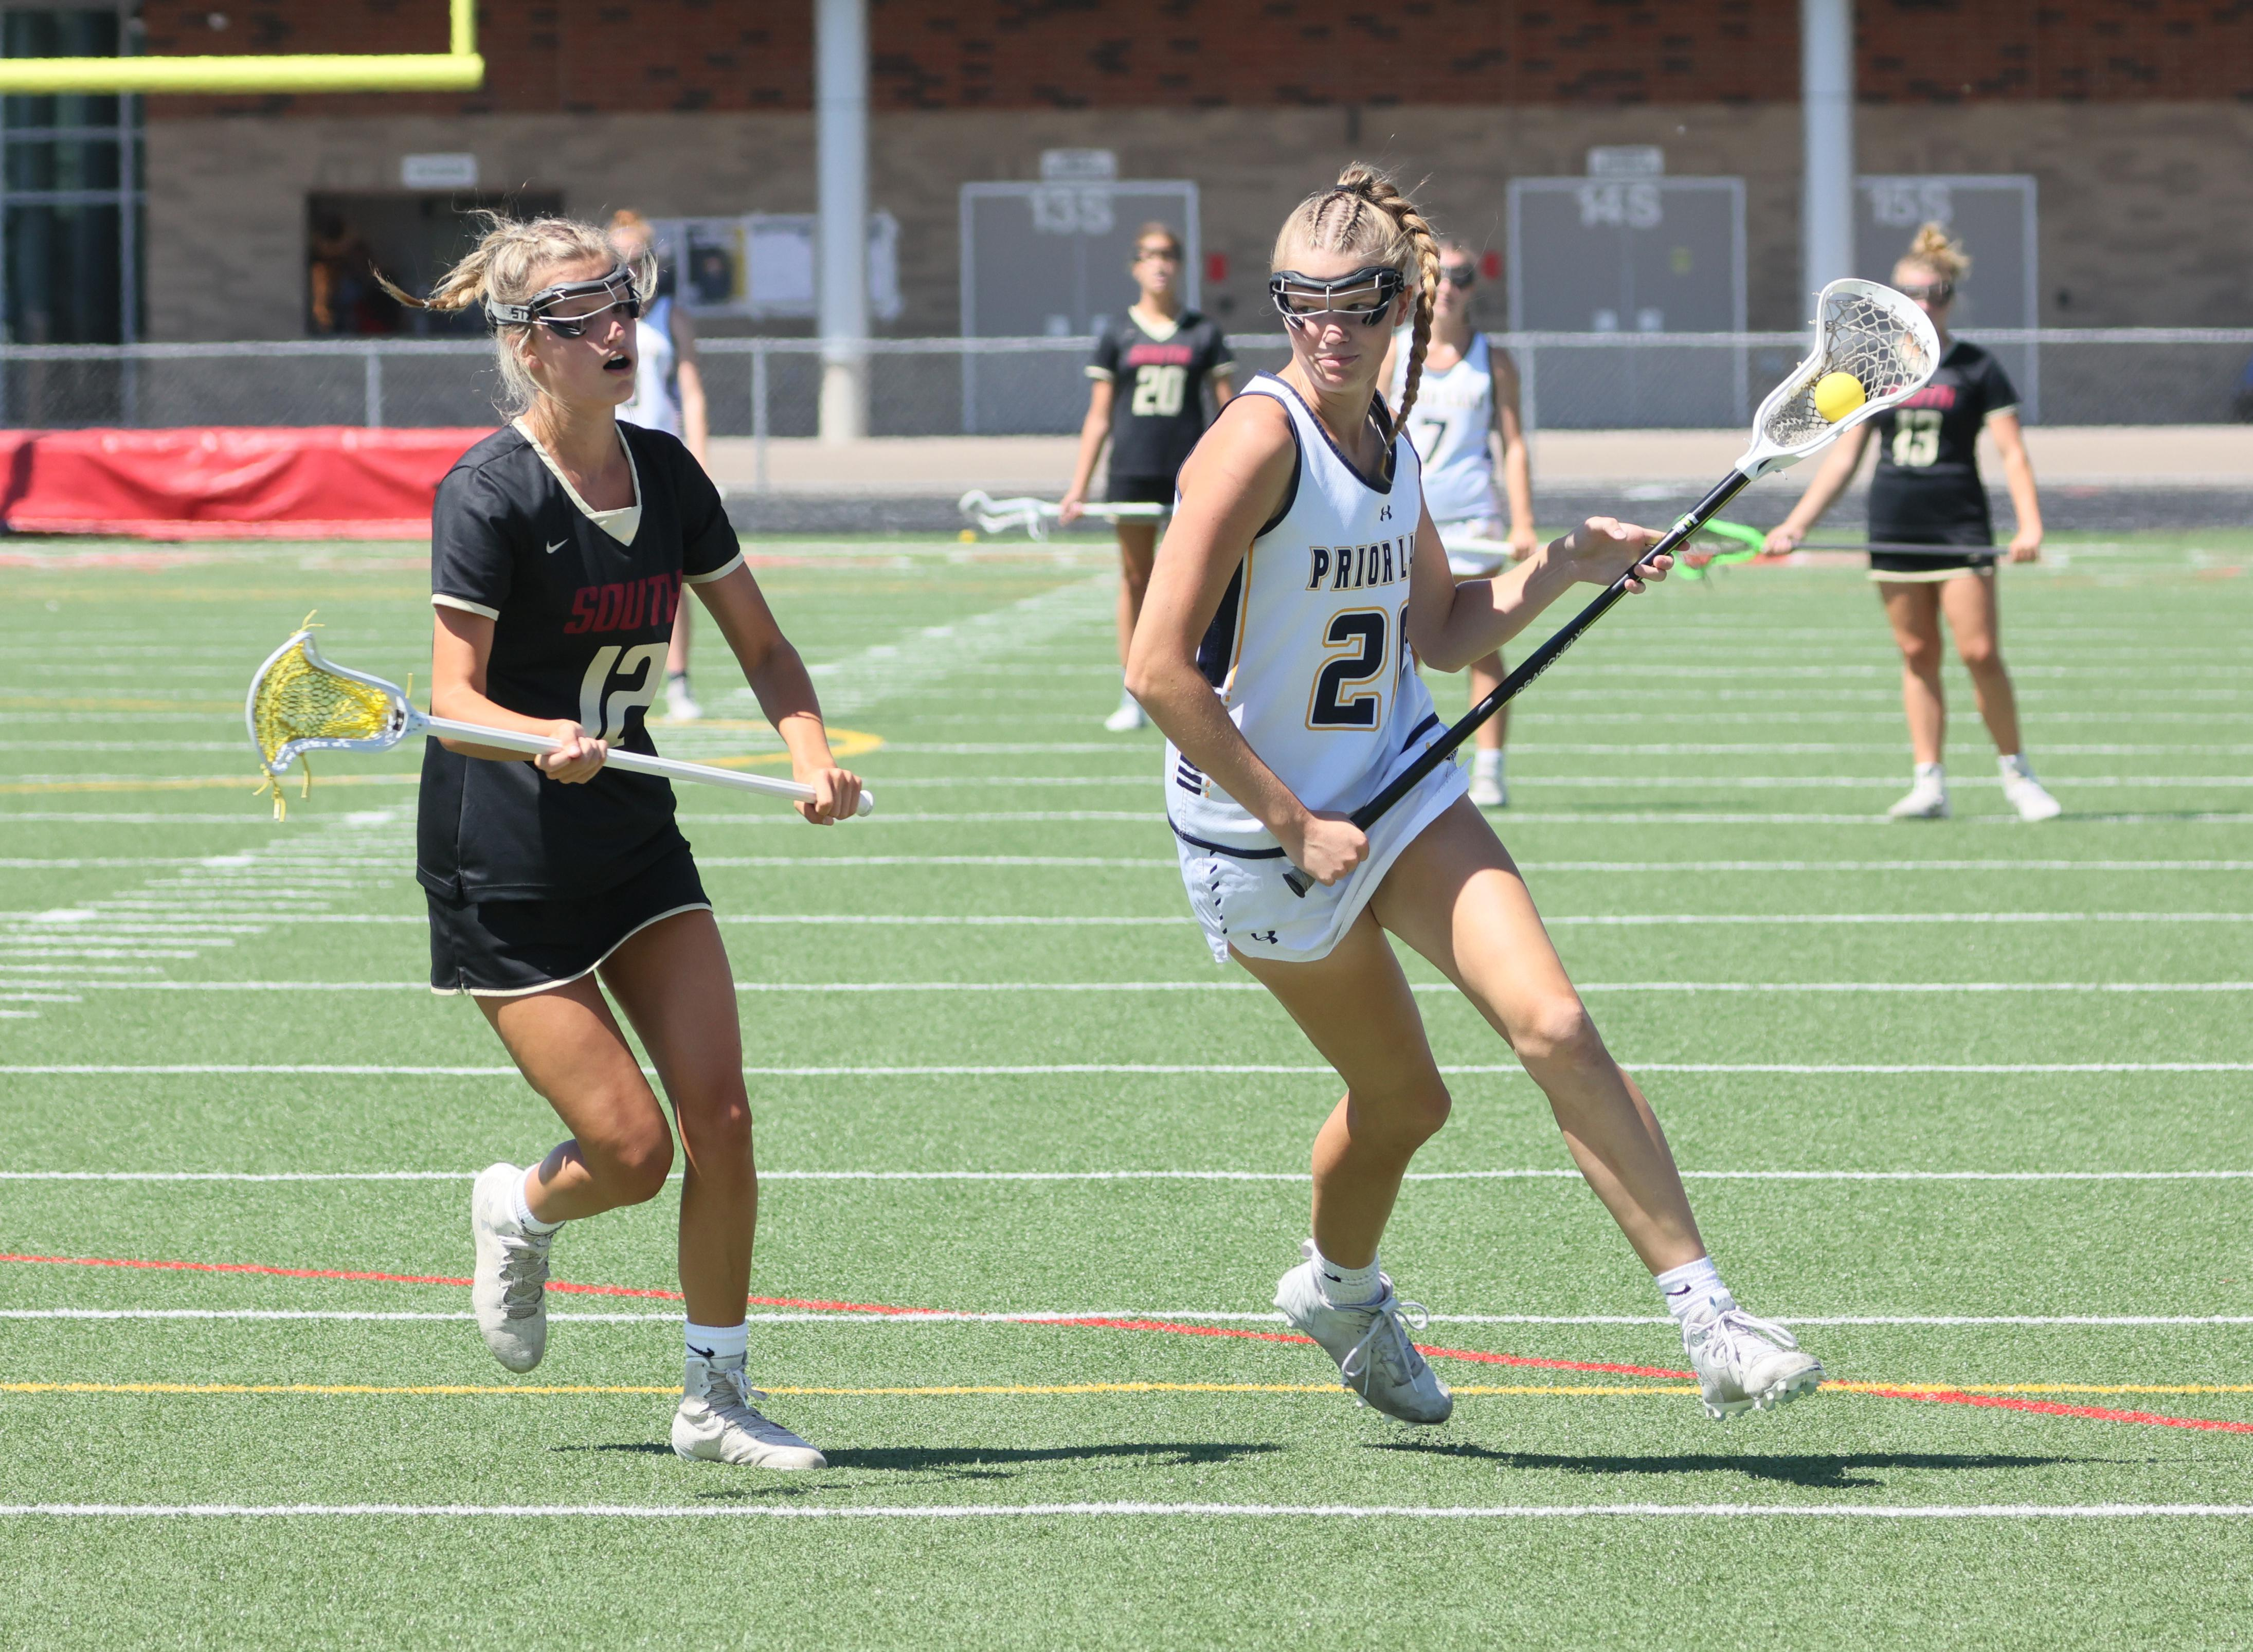 Payton Bloedow moves upfield in the state championship game against Lakeville South June 18. Bloedow was named 2021 Ms. Lacrosse. Photo by Cheryl A. Myers, SportsEngine